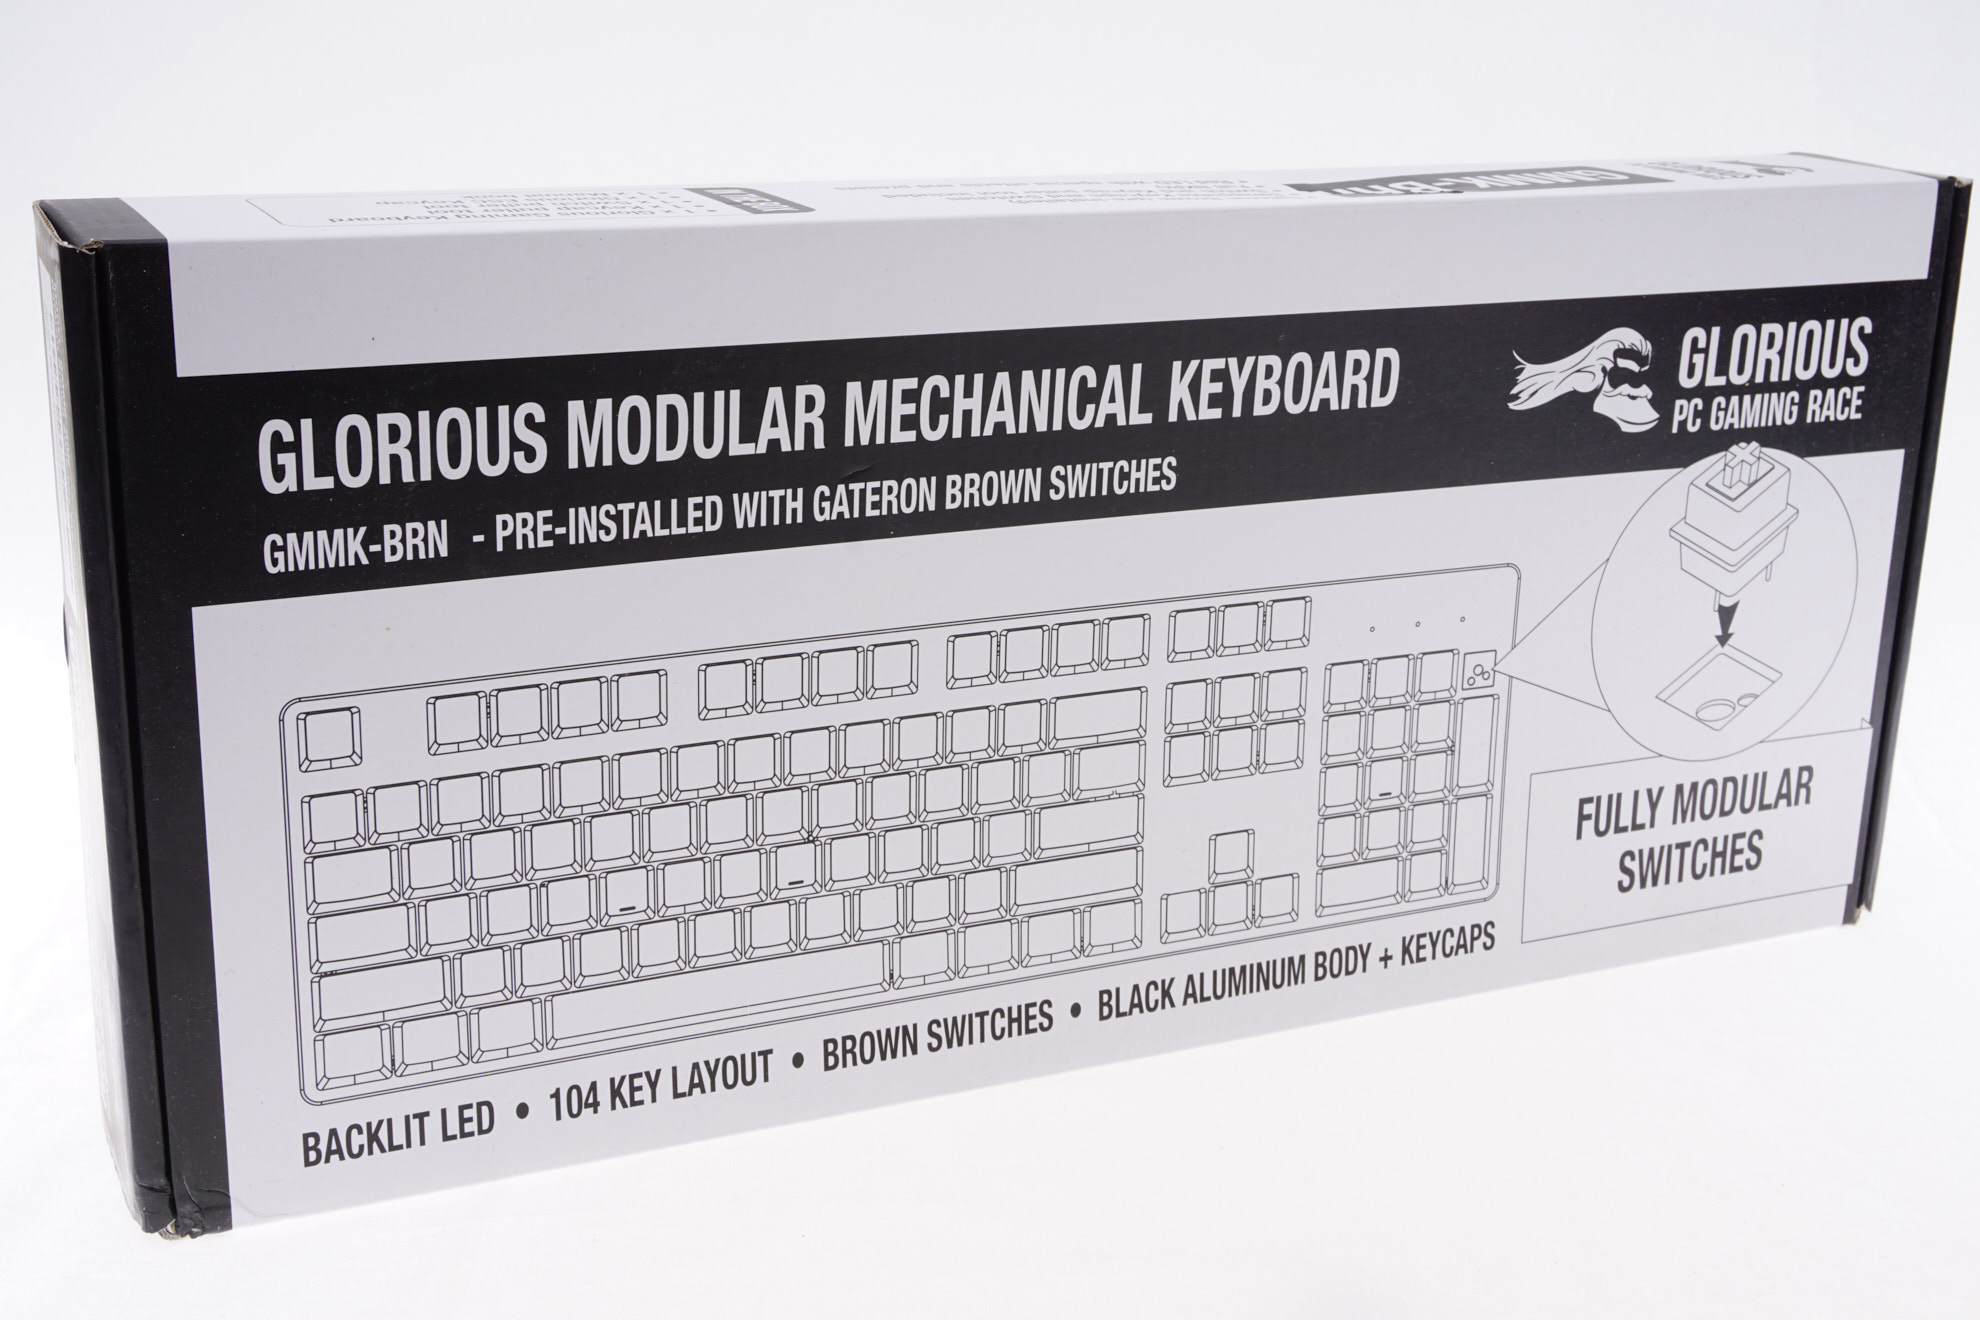 The Glorious PC Gaming Race GMMK-BRN Modular Mechanical Keyboard Review